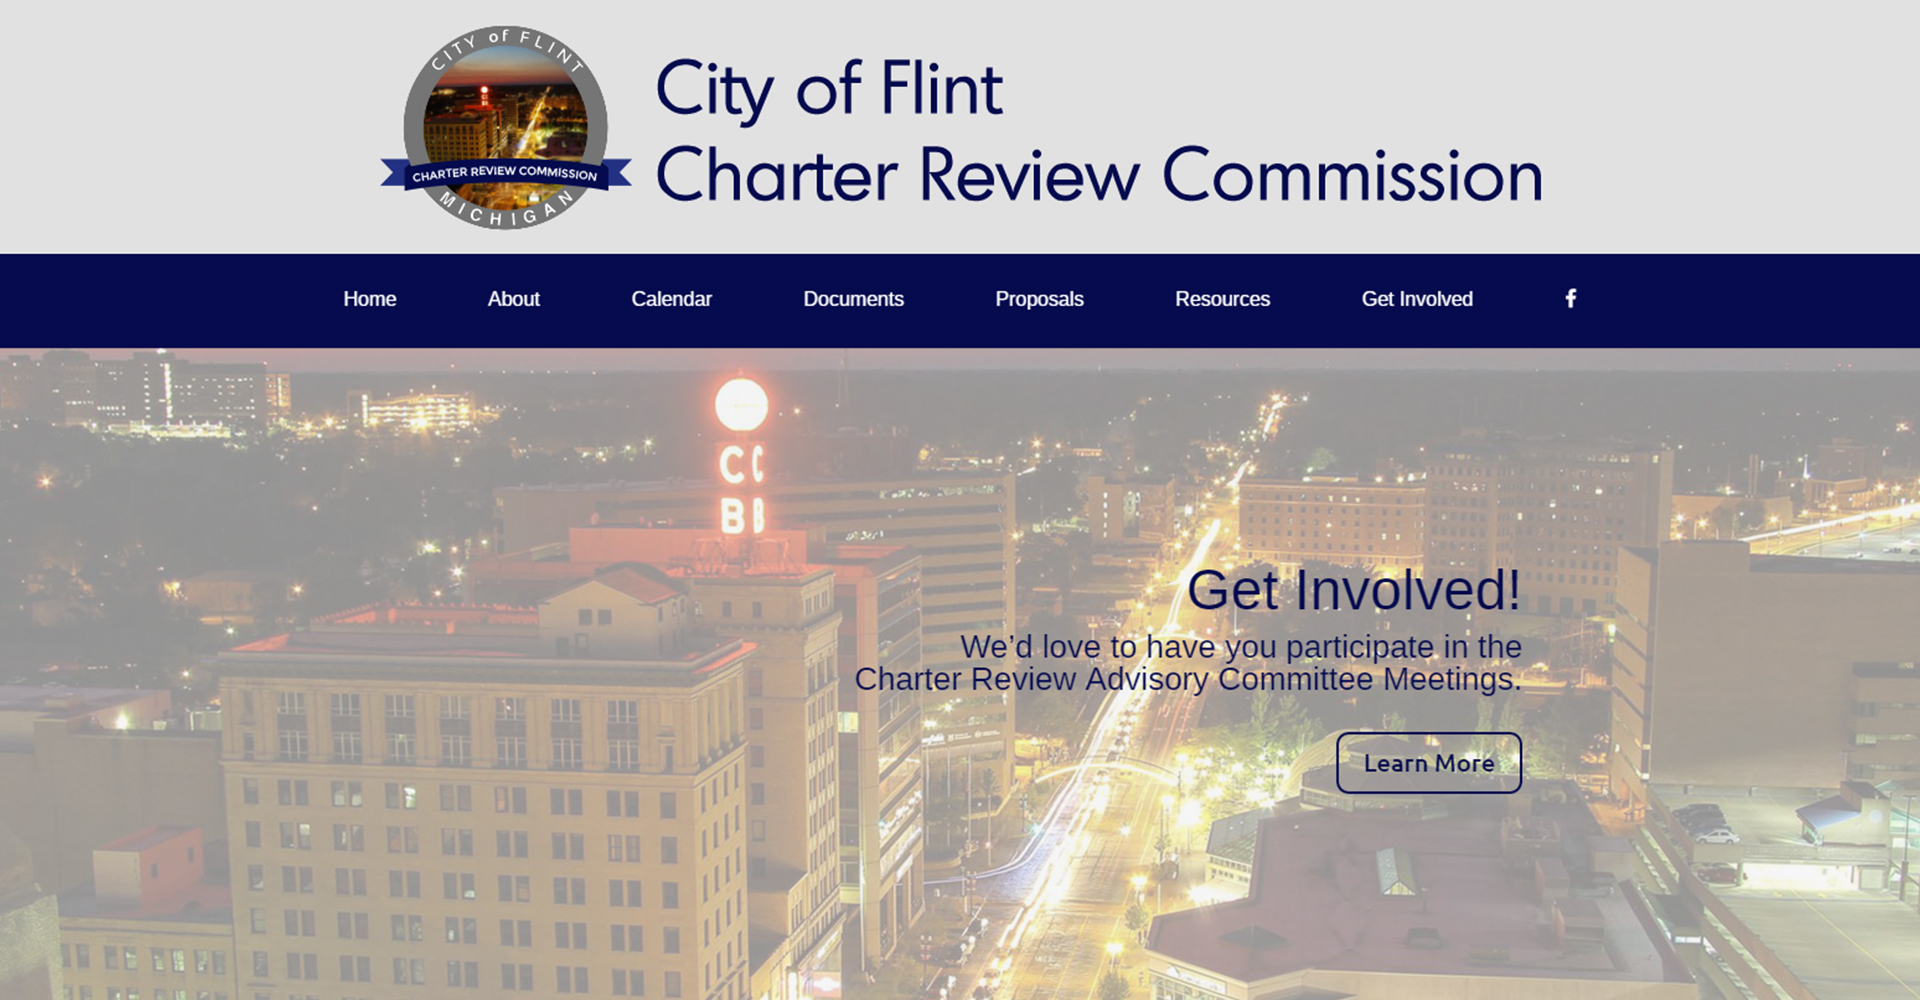 Flint Charter Review Commission - Zoda Design